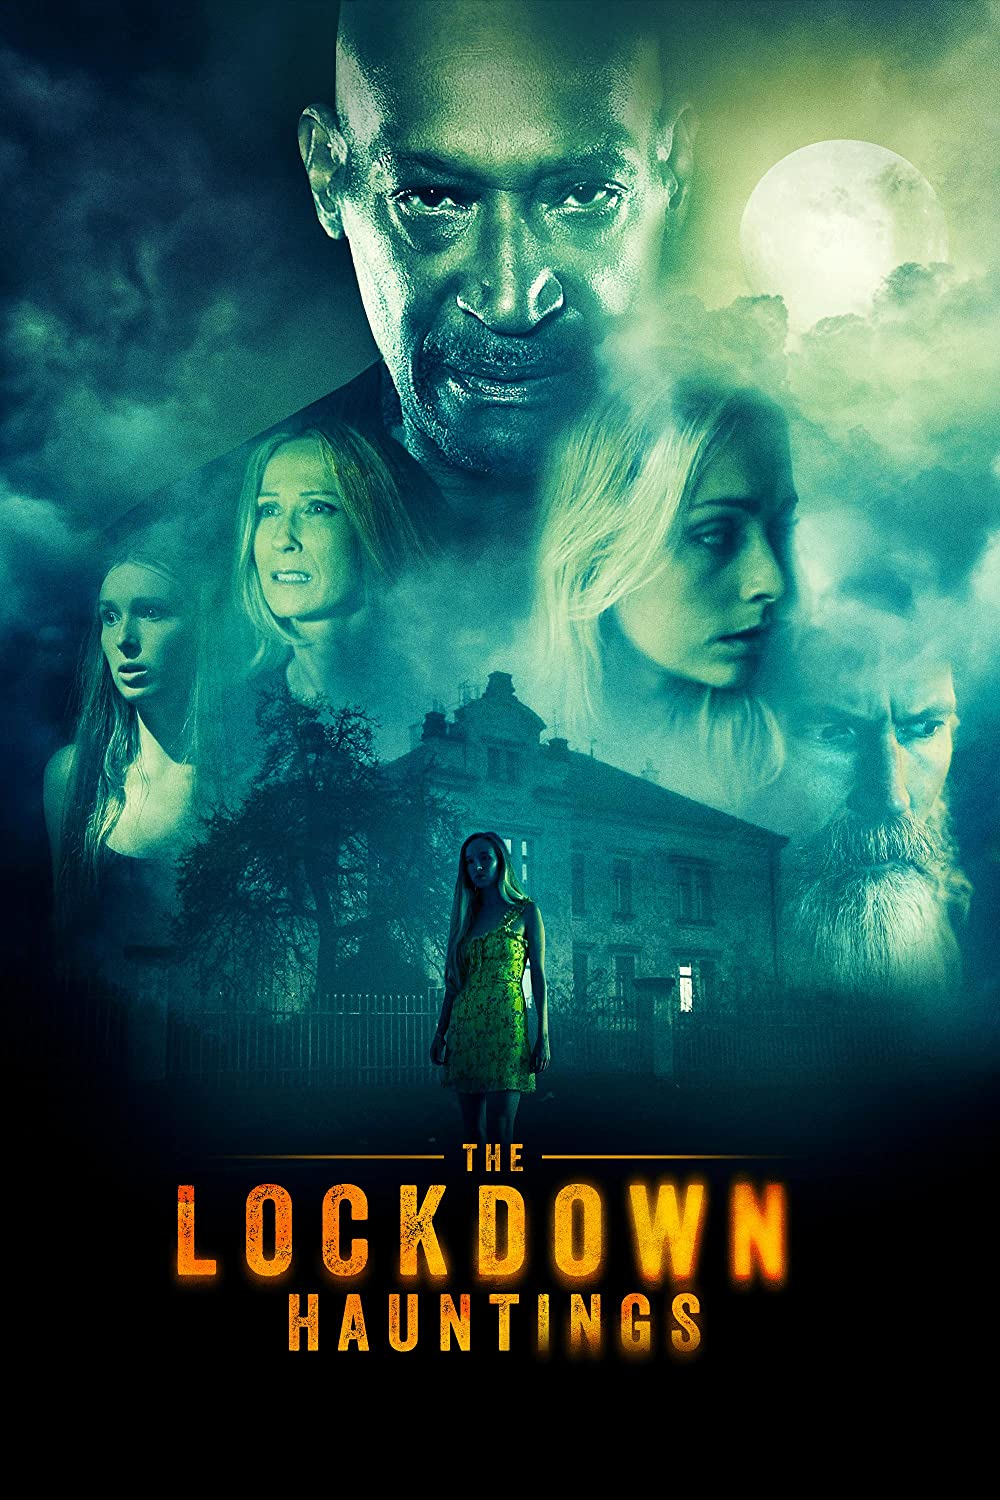 The Lockdown Hauntings 2021 English HDRip 290MB Download